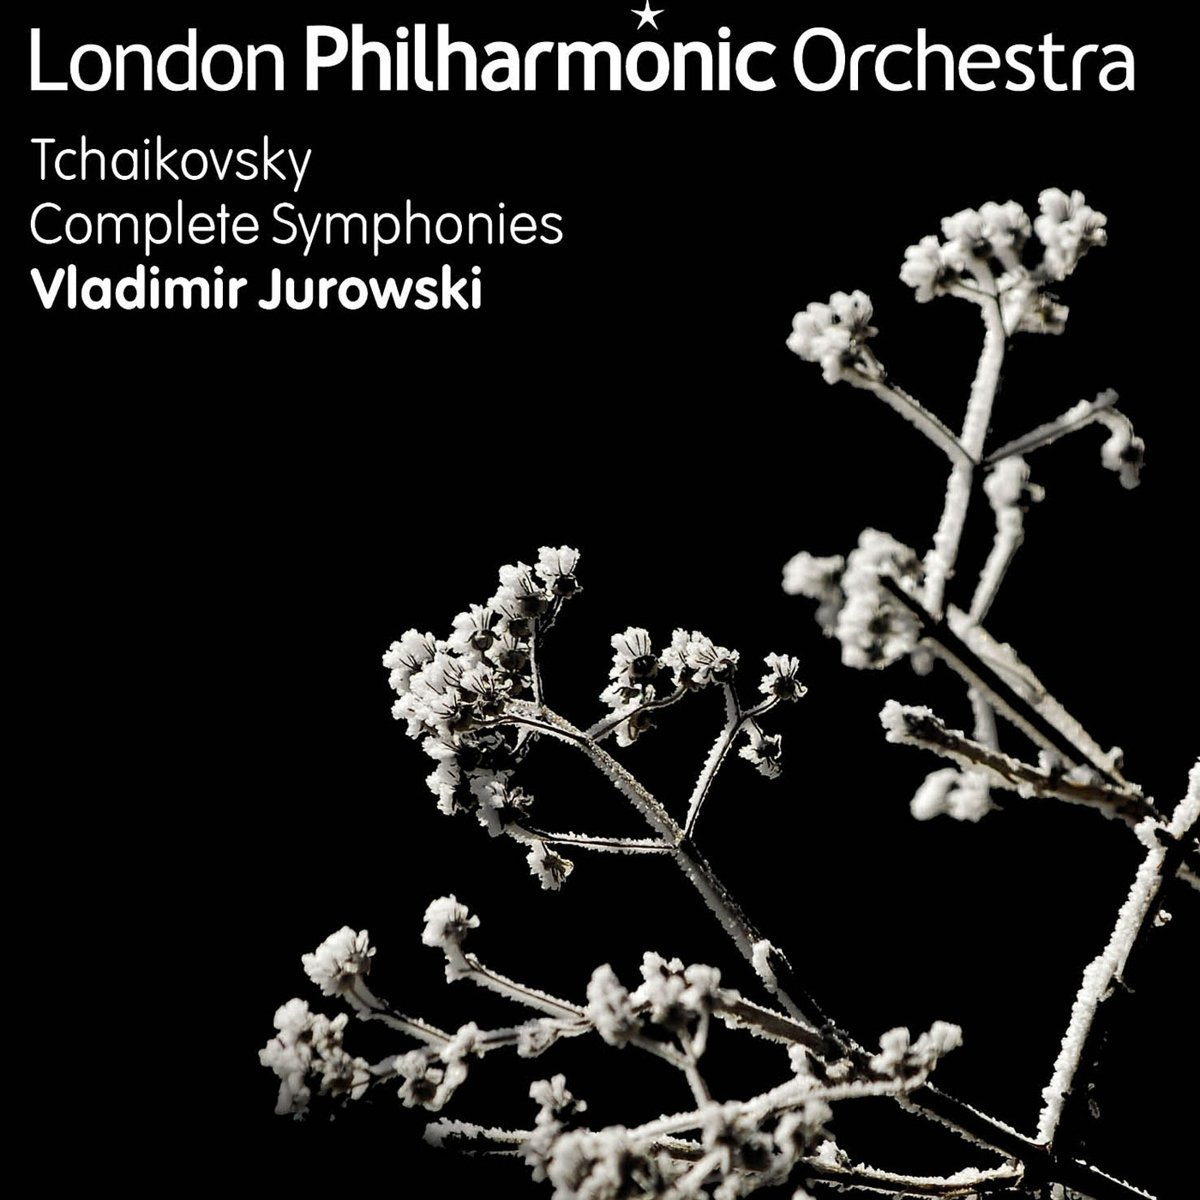 Tchaikovsky: London Philharmonic